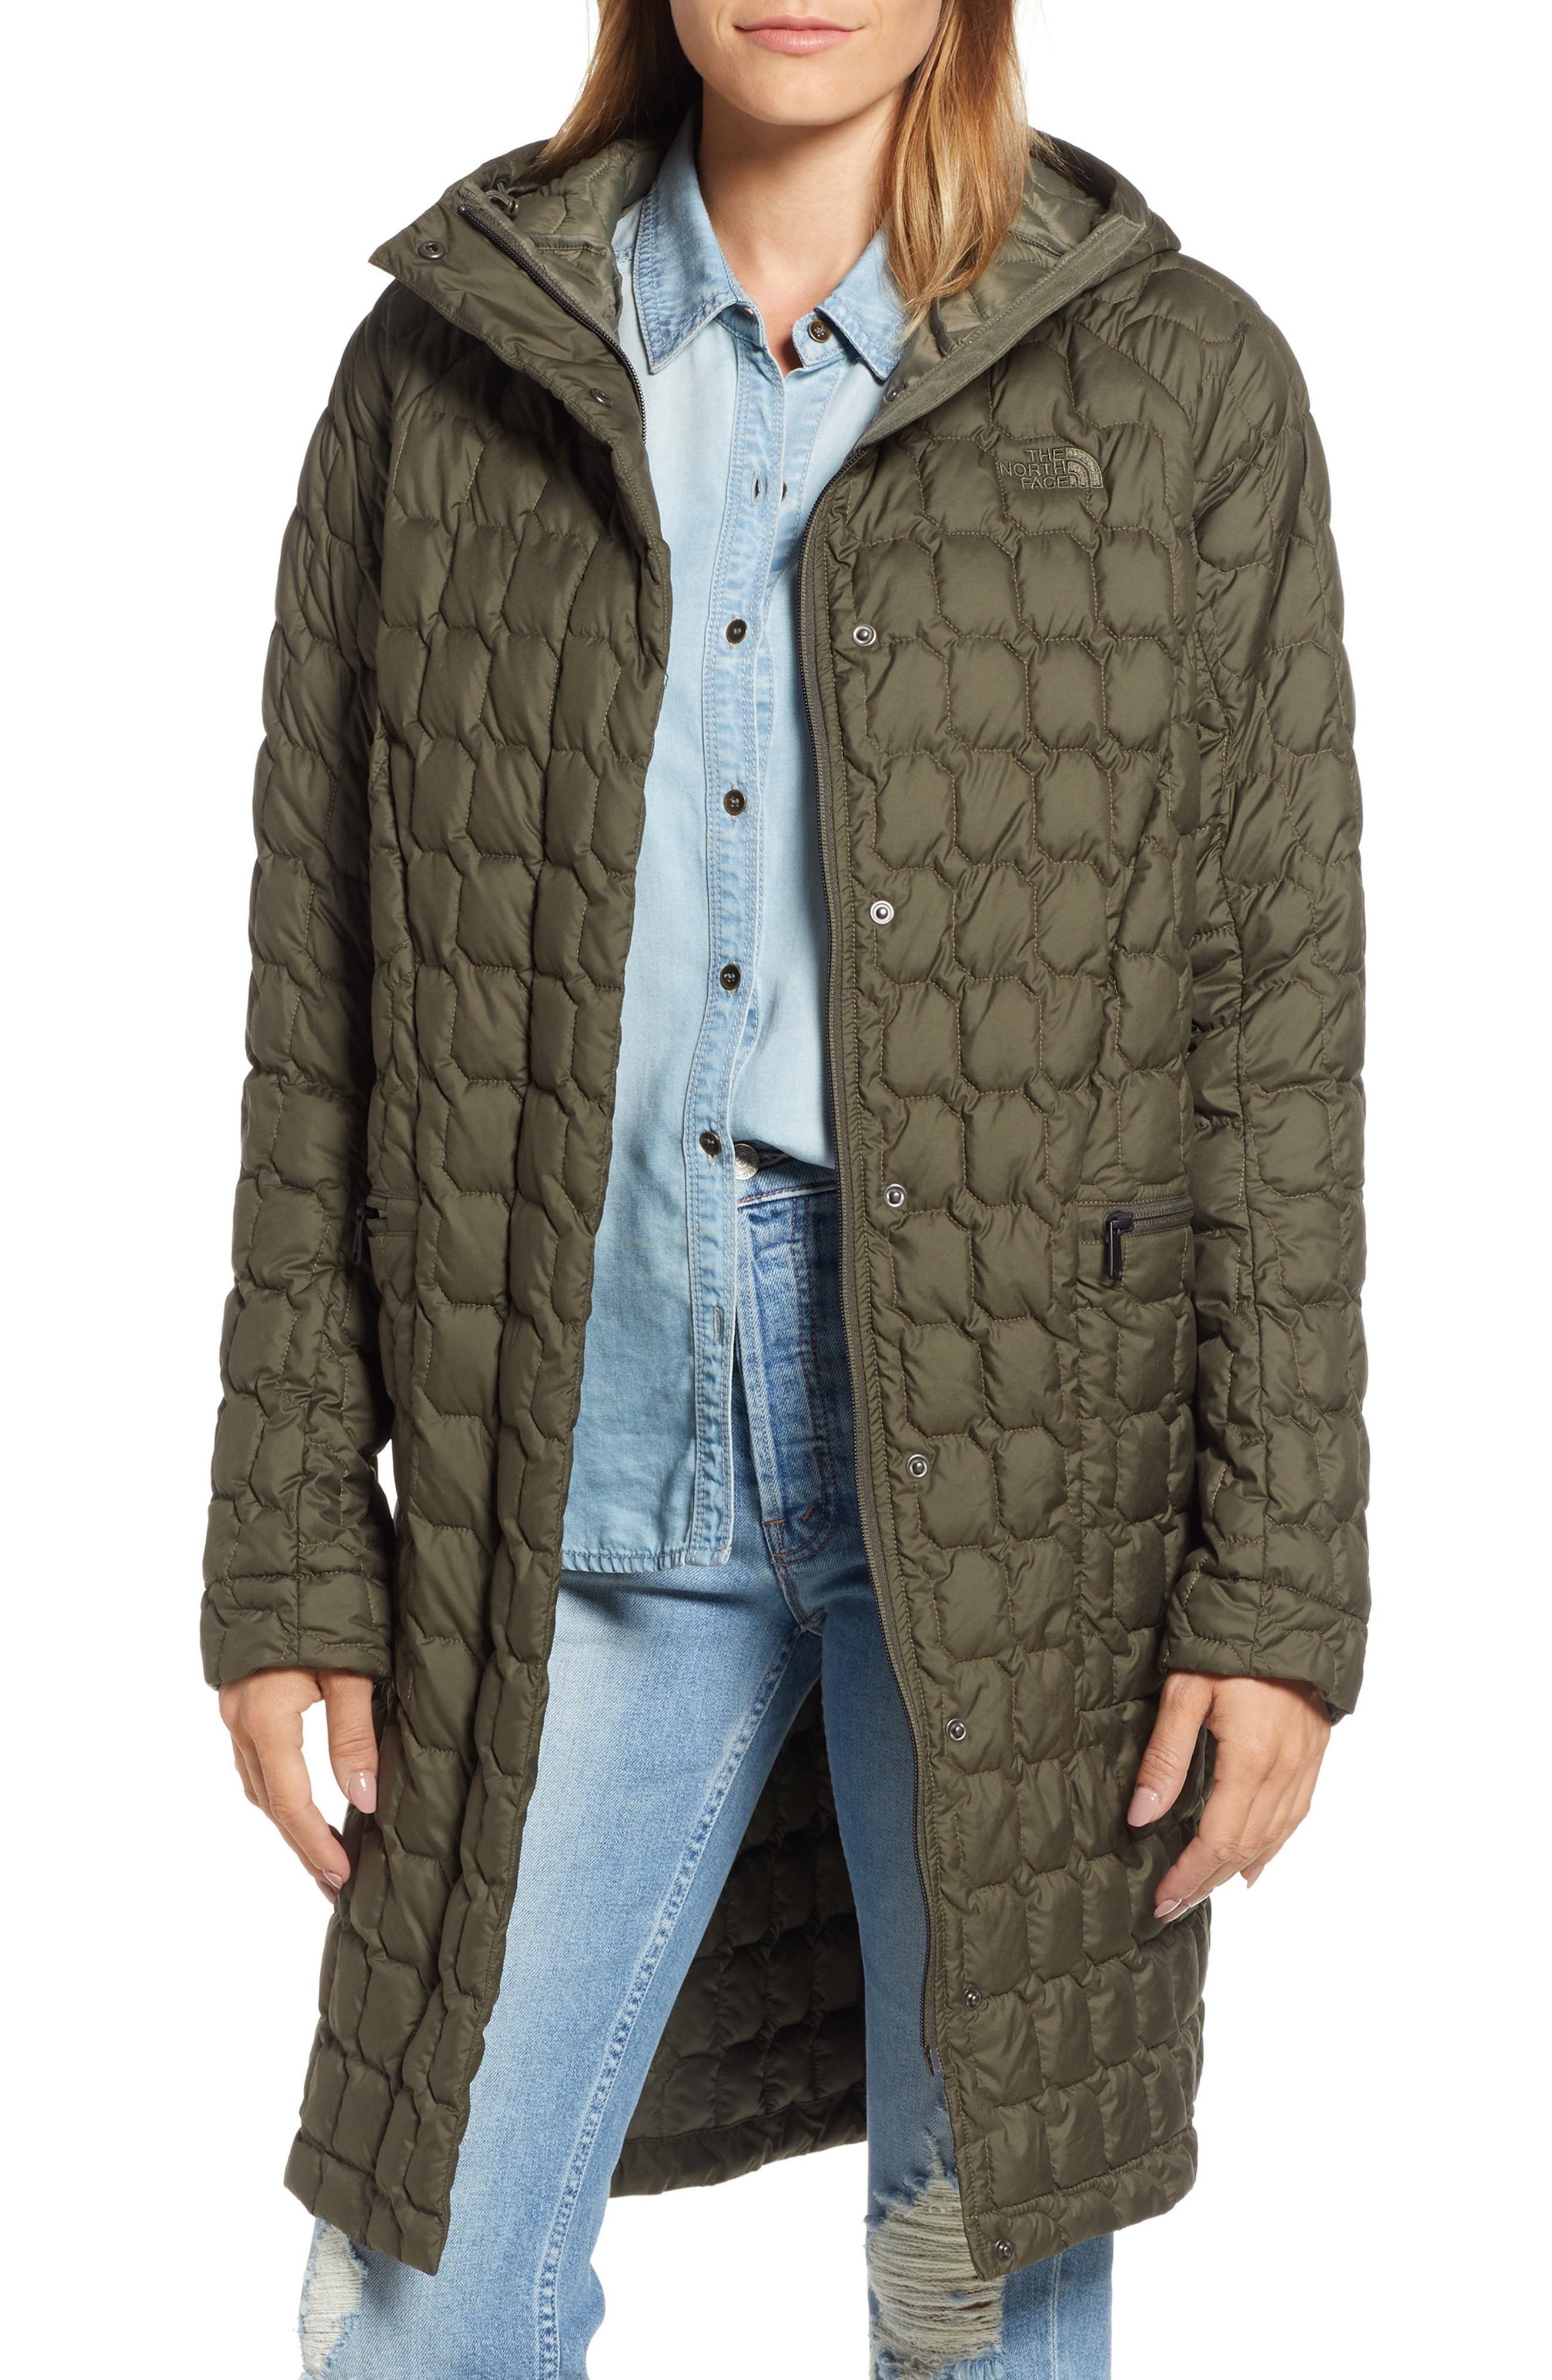 THE NORTH FACE, Thermoball<sup>™</sup> Water Resistant Duster Jacket, Main thumbnail 1, color, 301